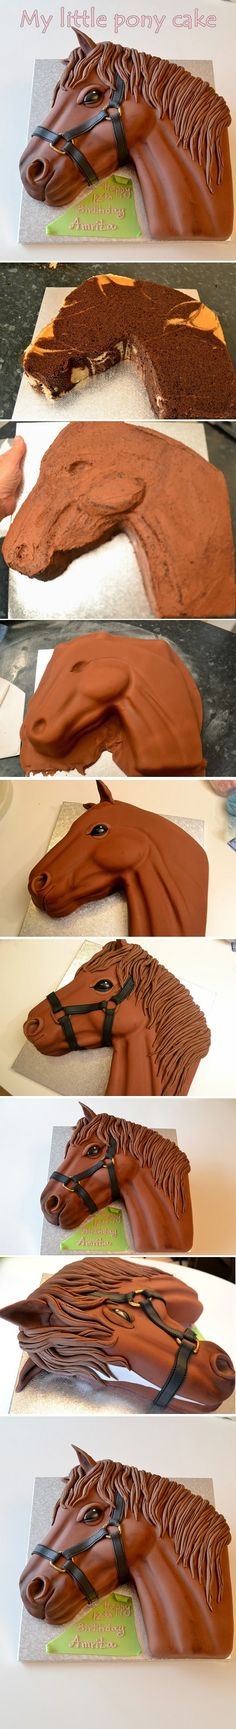 Horse cake ( I would feel bad cutting it)                                                                                                                                                                                 Mais